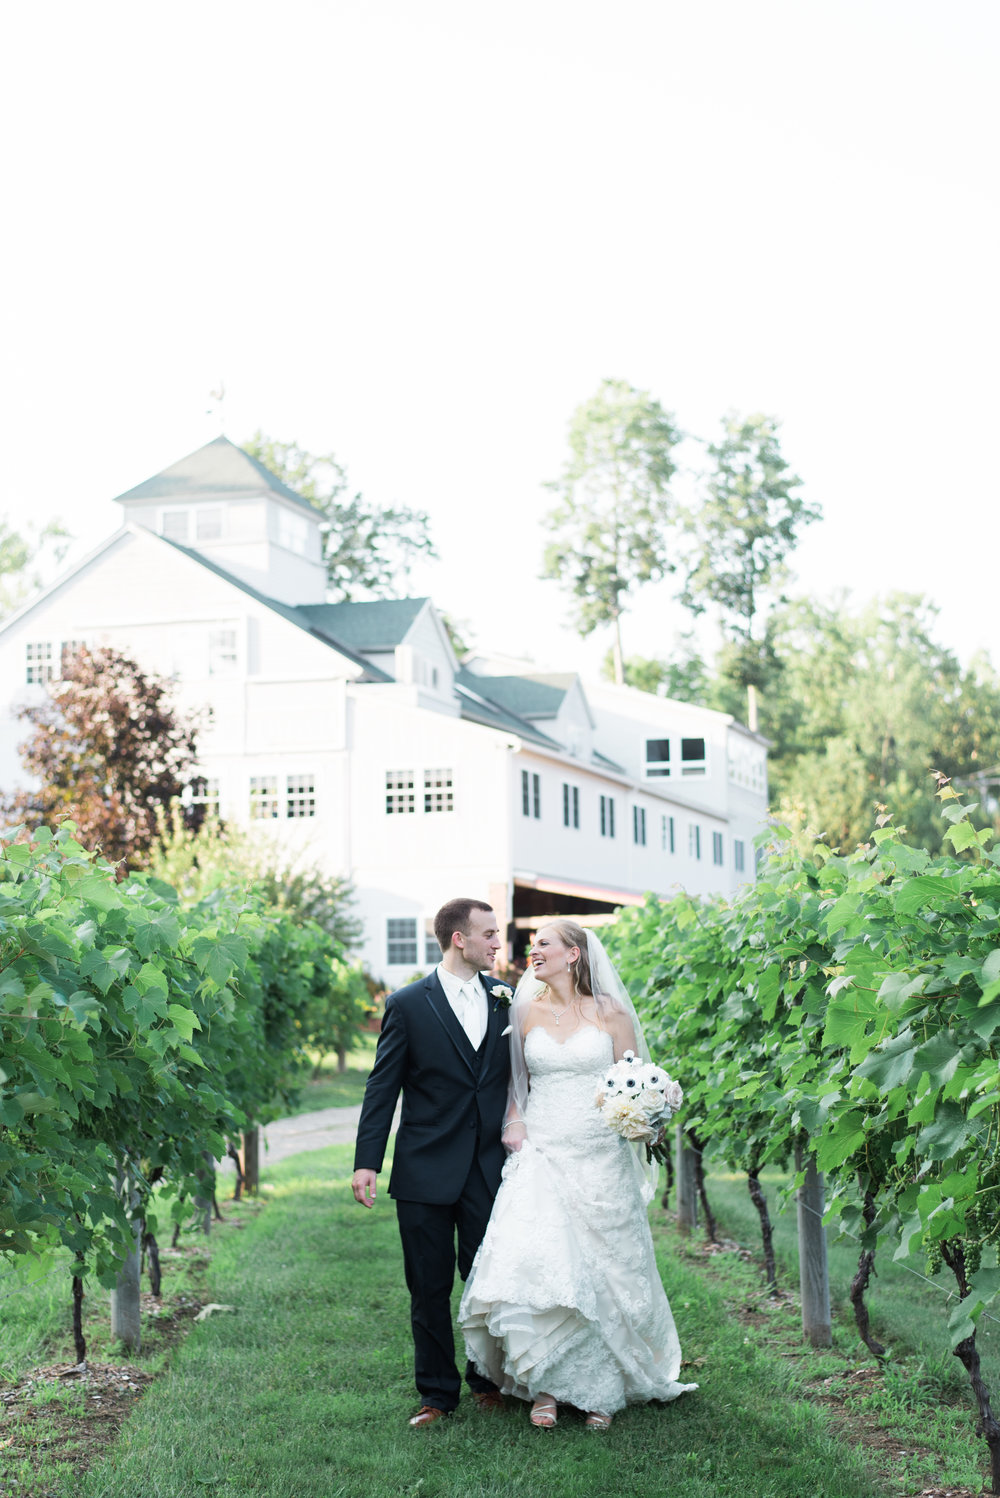 Jessica K Feiden Photography_Anne Marie + Tom's Sneak Peek-54.jpg